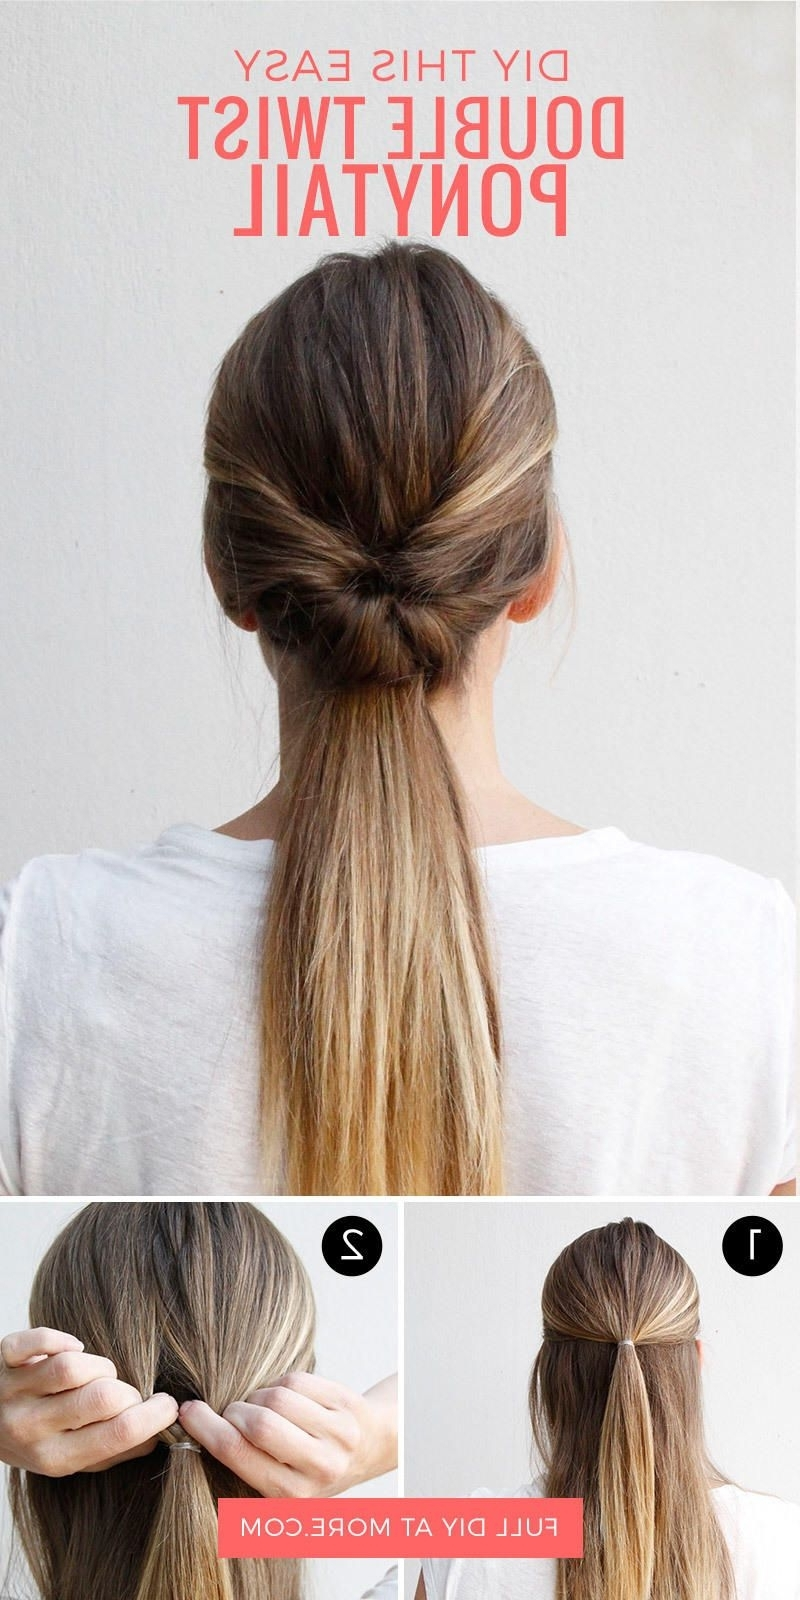 This Double Twist Ponytail Is The Perfect Five Minute Hairstyle Regarding Fashionable Pumped Up Side Pony Hairstyles (View 17 of 20)